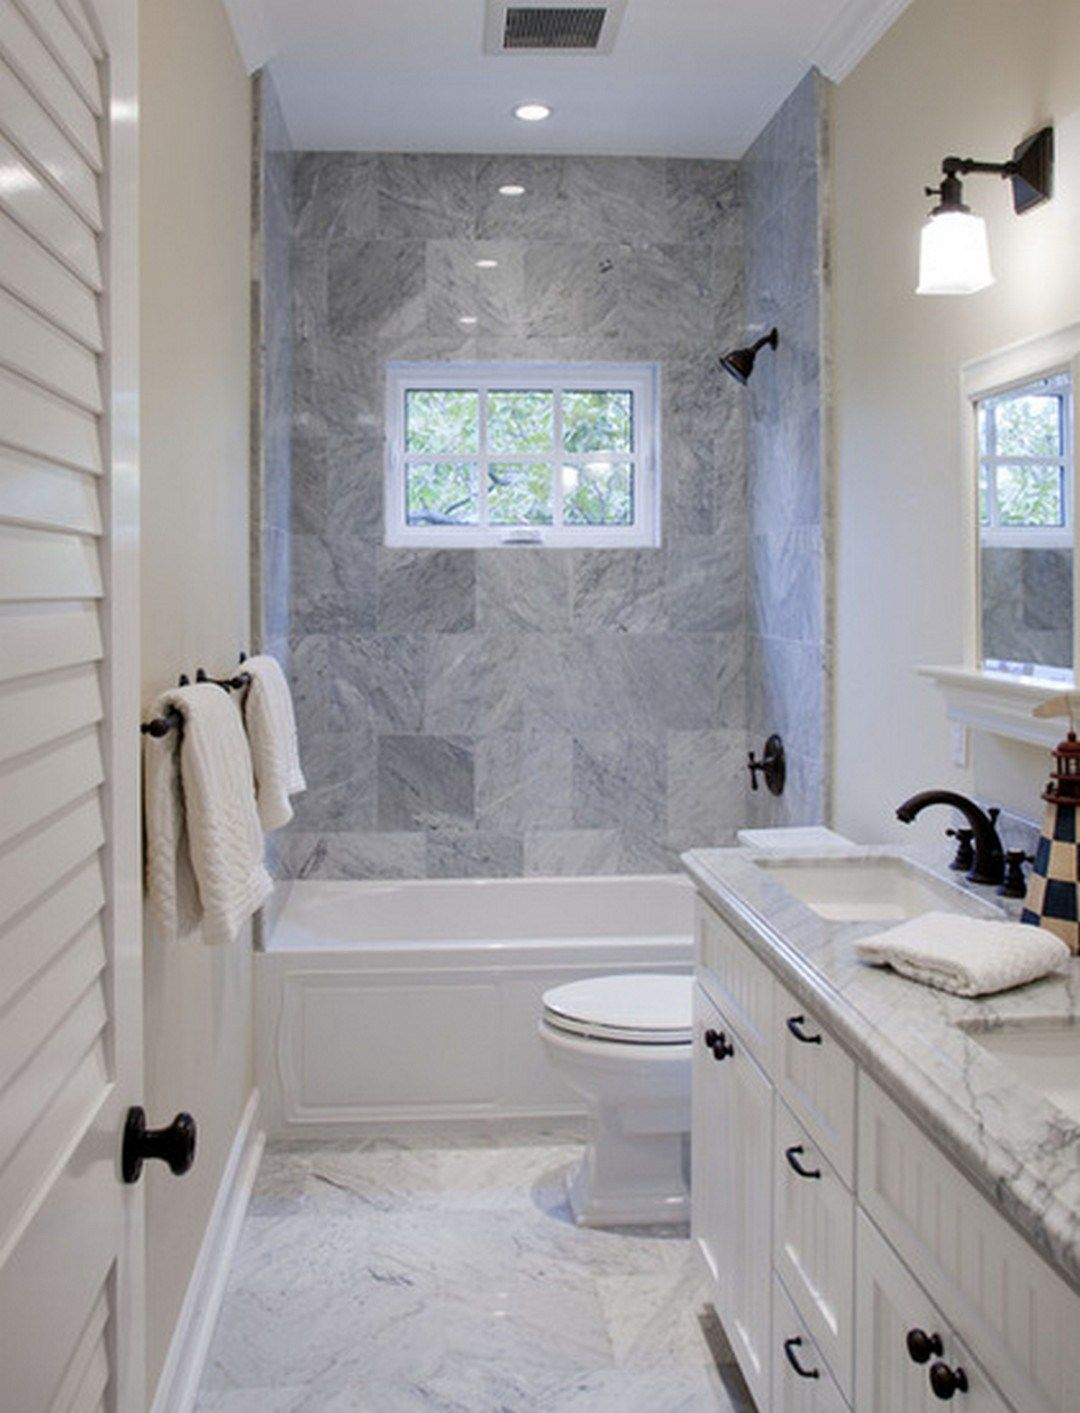 Shower with window ideas   small bathroom tub shower combo remodeling ideas   bathrooms